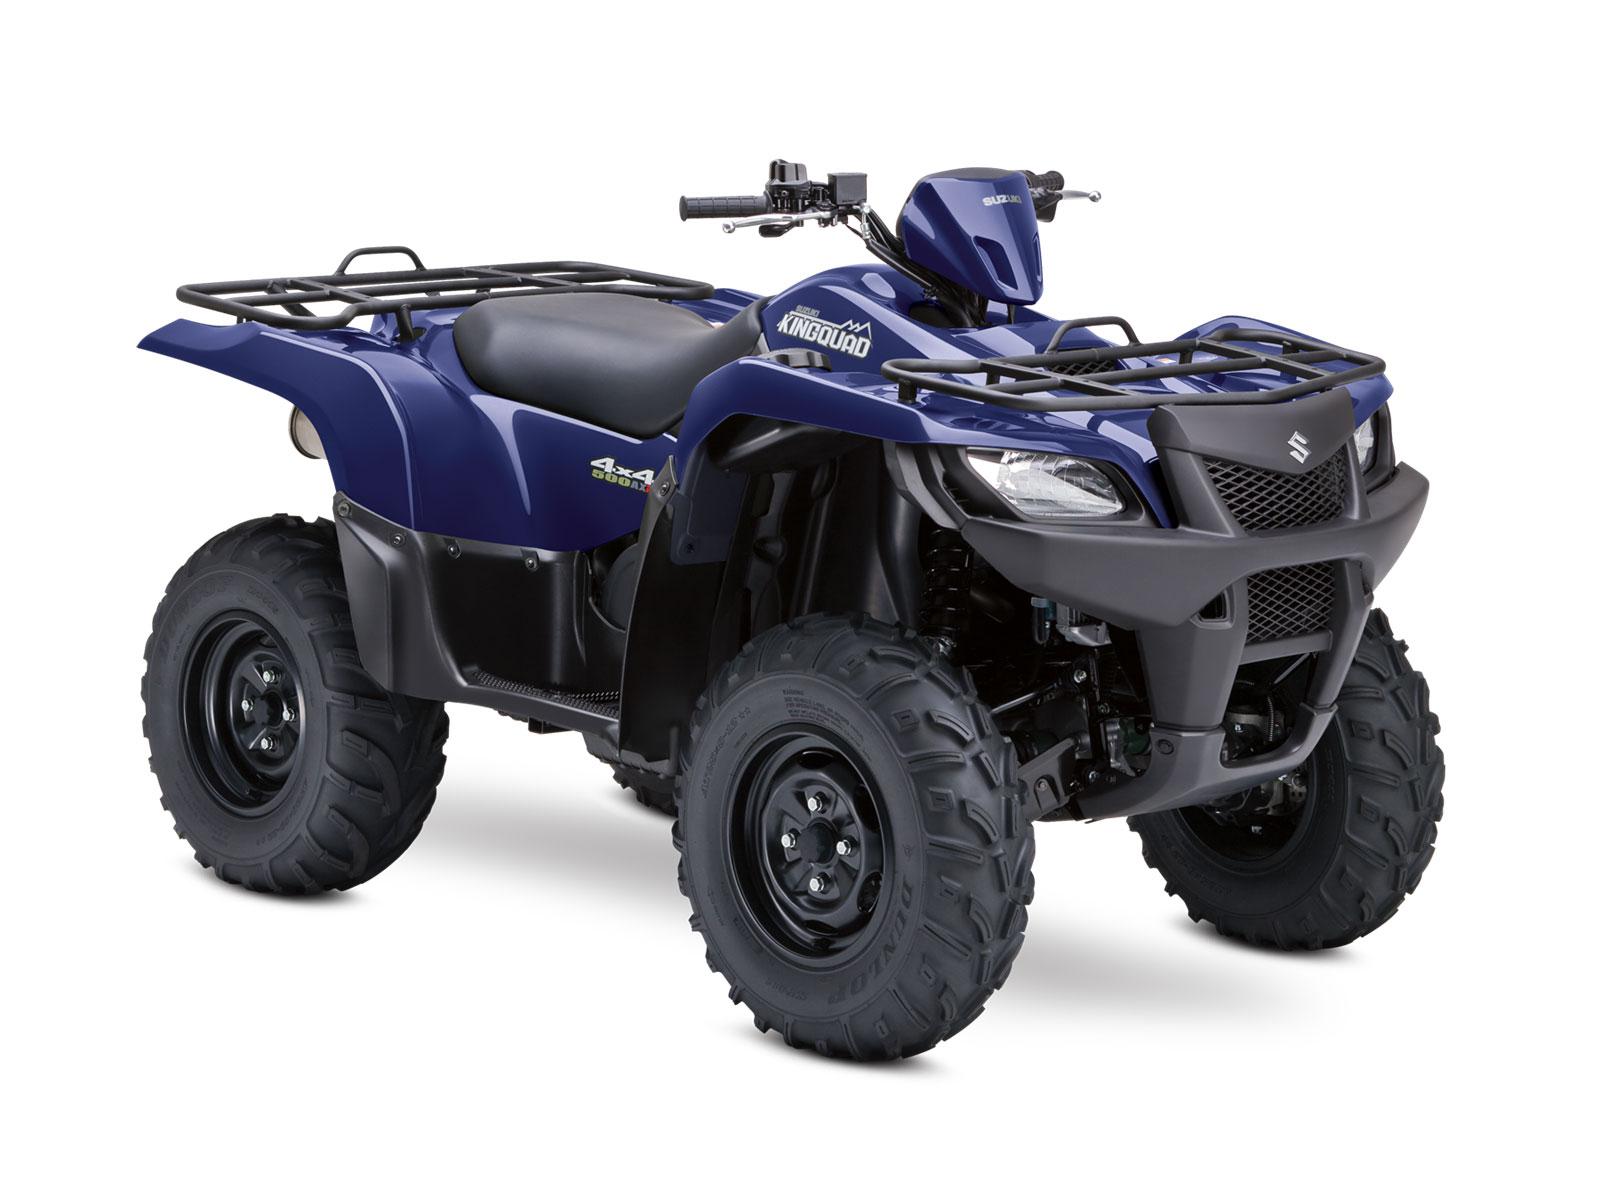 King quad 500 wiring diagram wiring diagram 2012 suzuki kingquad 500axi review 2014 kingquad 500 wiring diagram king quad 500 wiring diagram asfbconference2016 Image collections